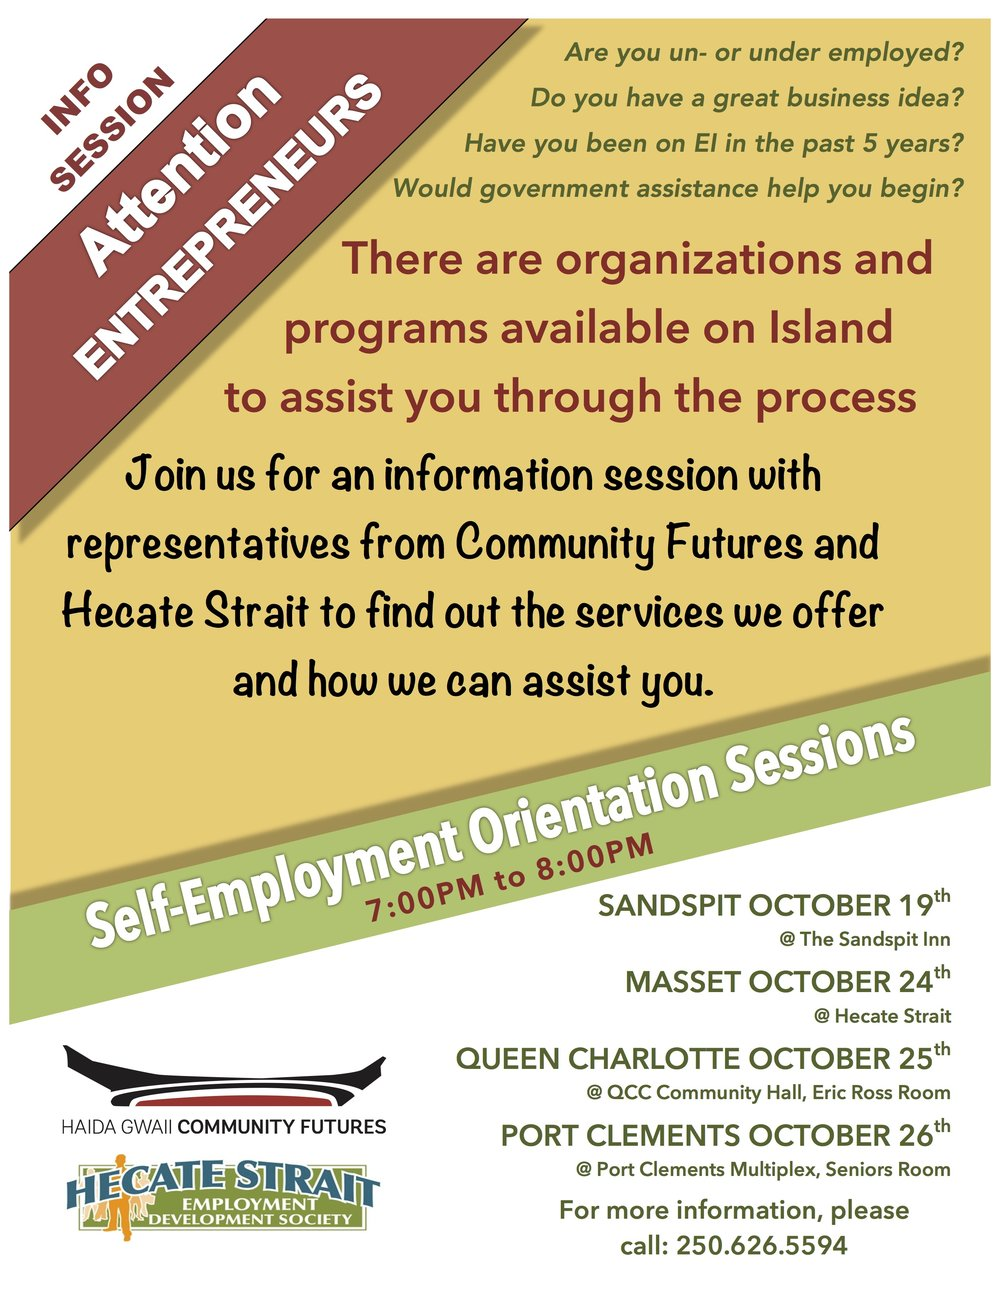 Entrepreneurs Invitation_SEB information sessions.jpg